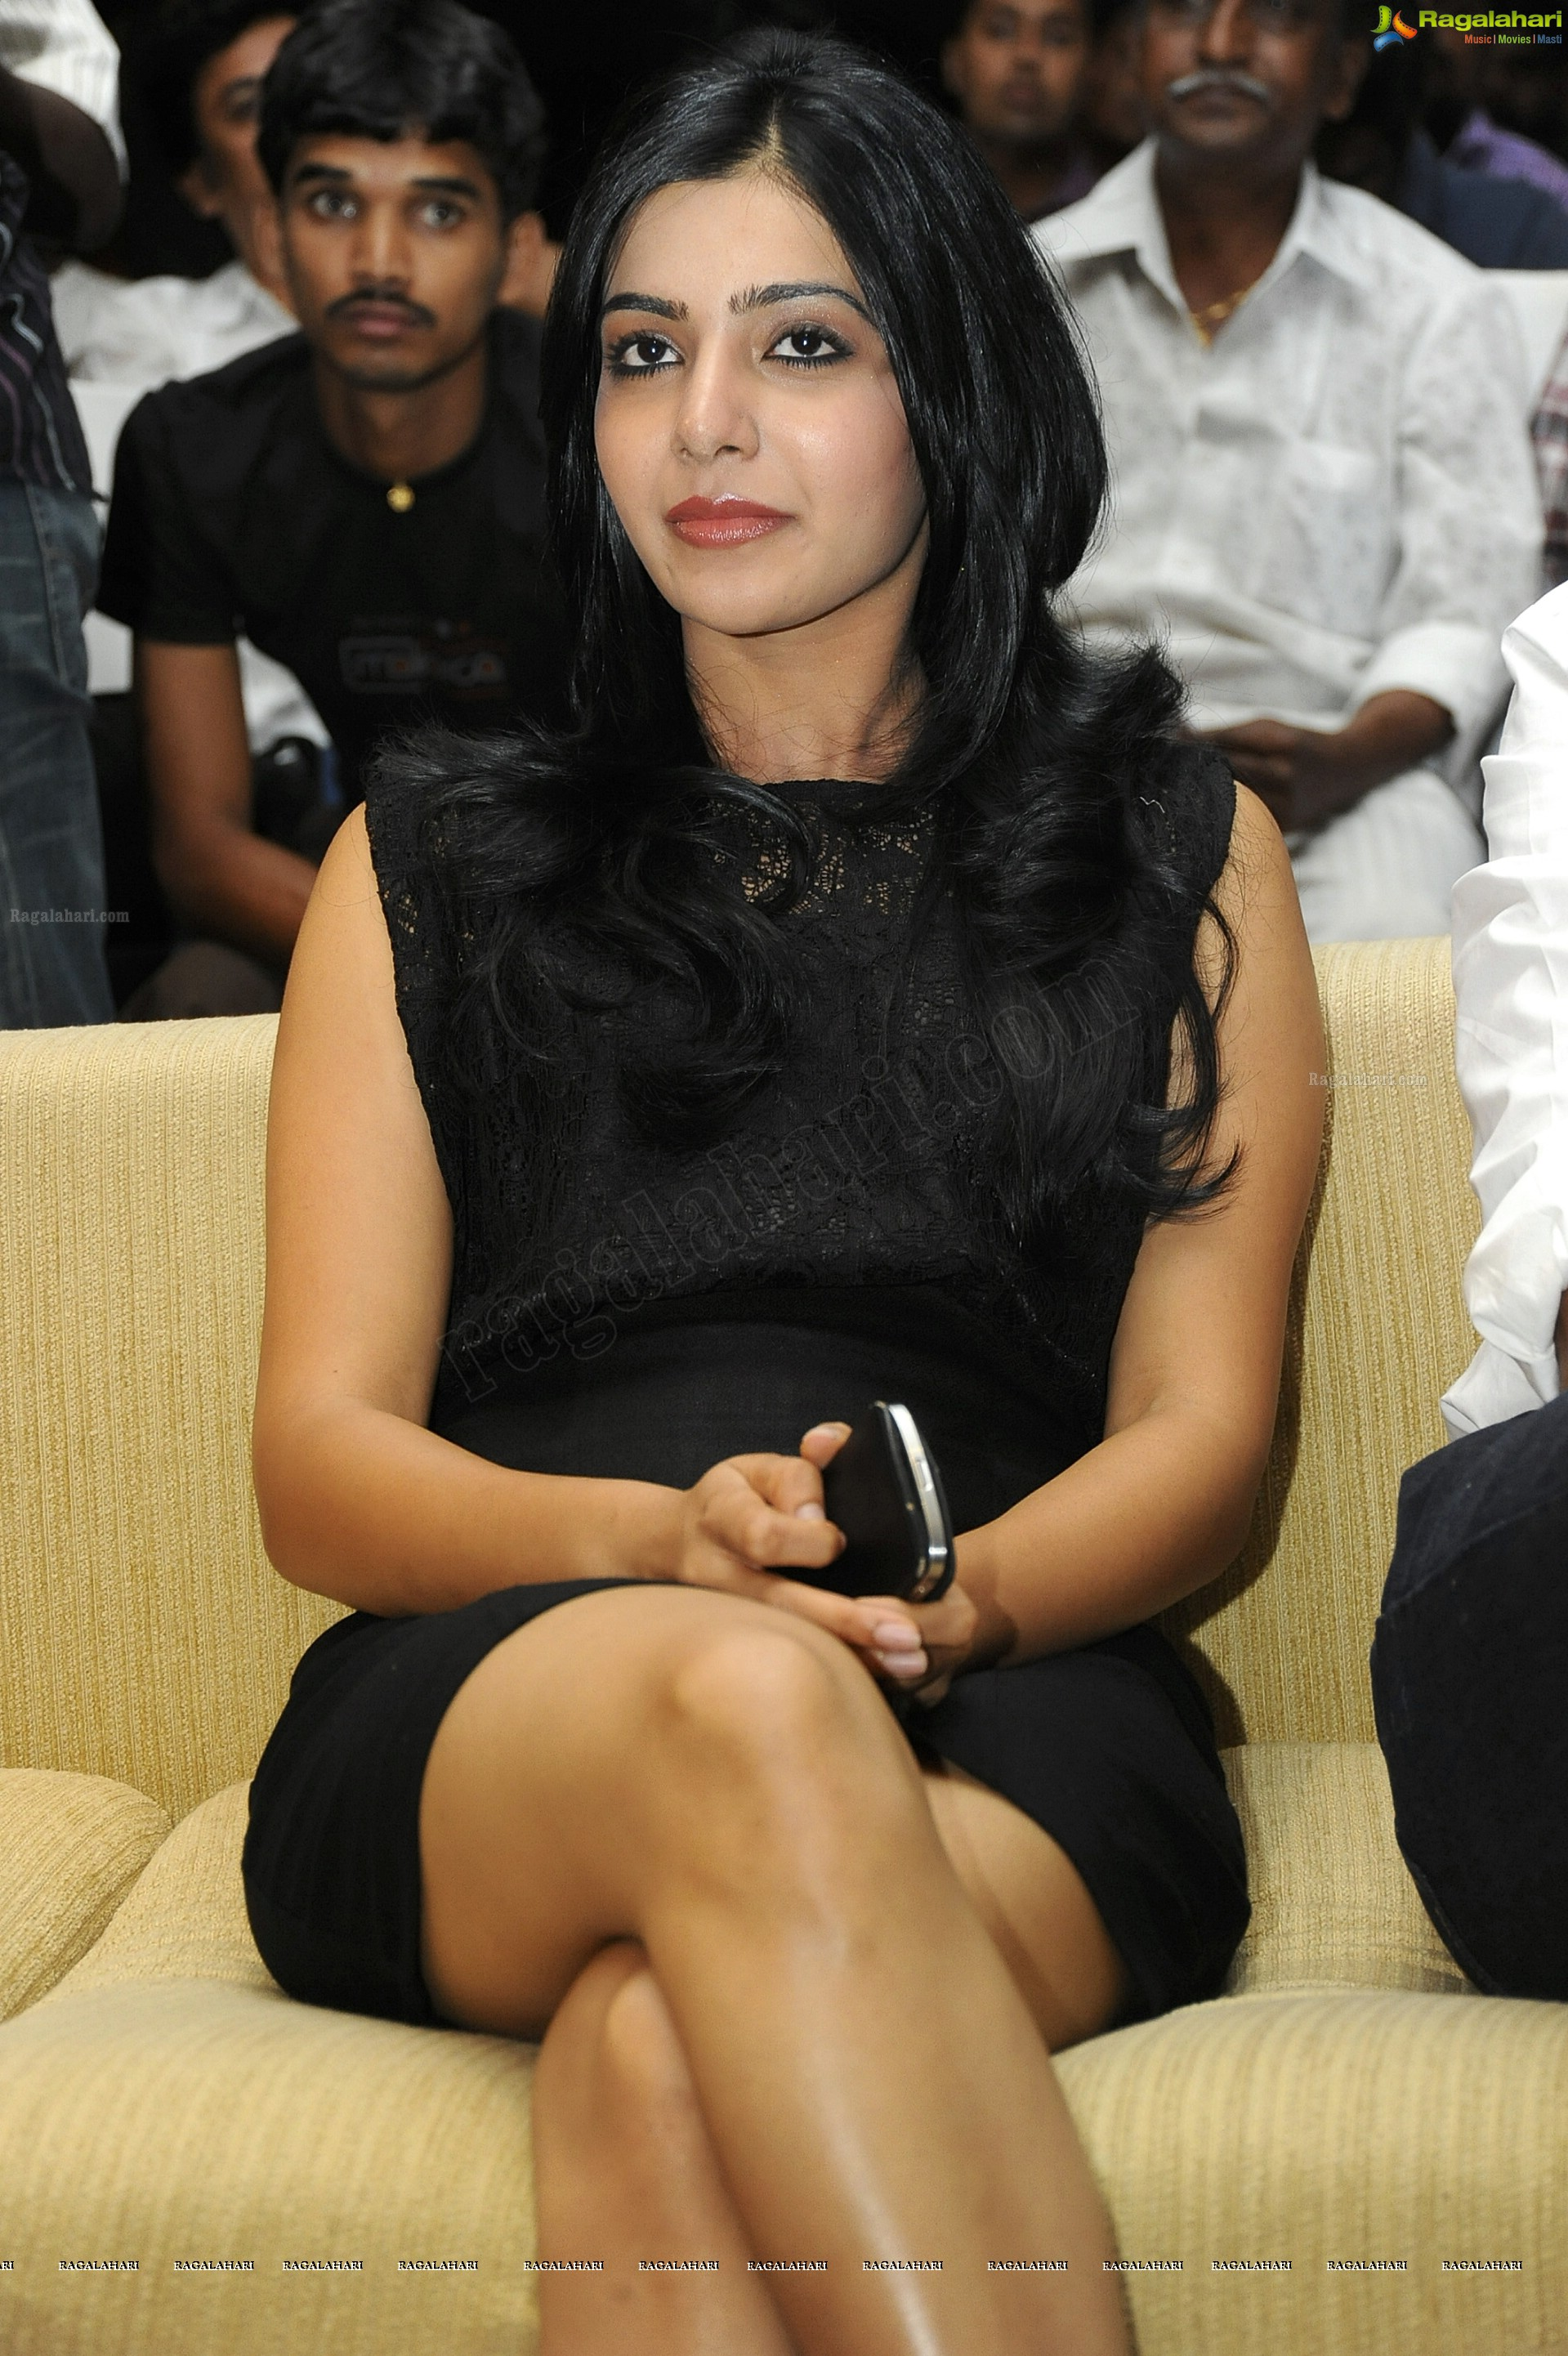 Samantha - HD Gallery